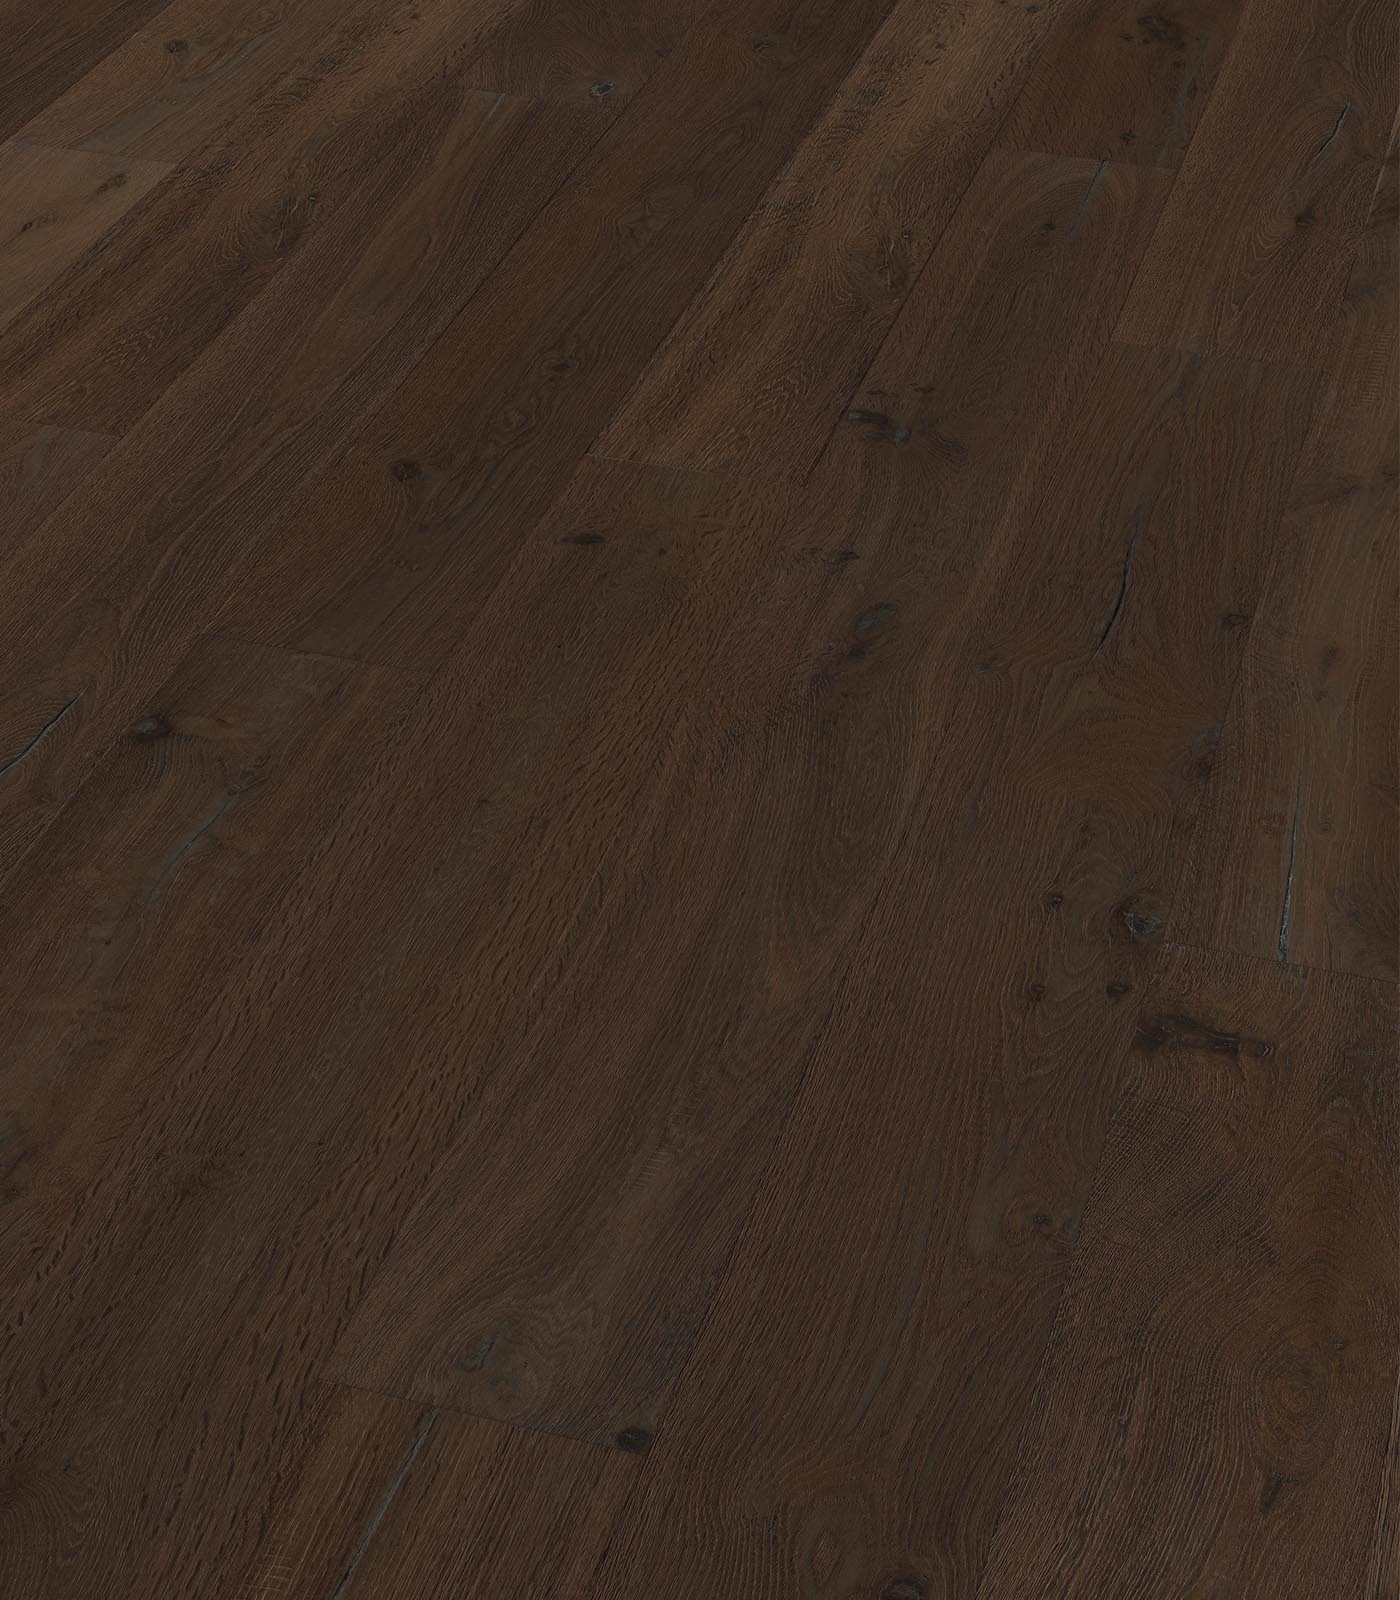 Mount Fuji-Antique Collection-European Oak floors-angle